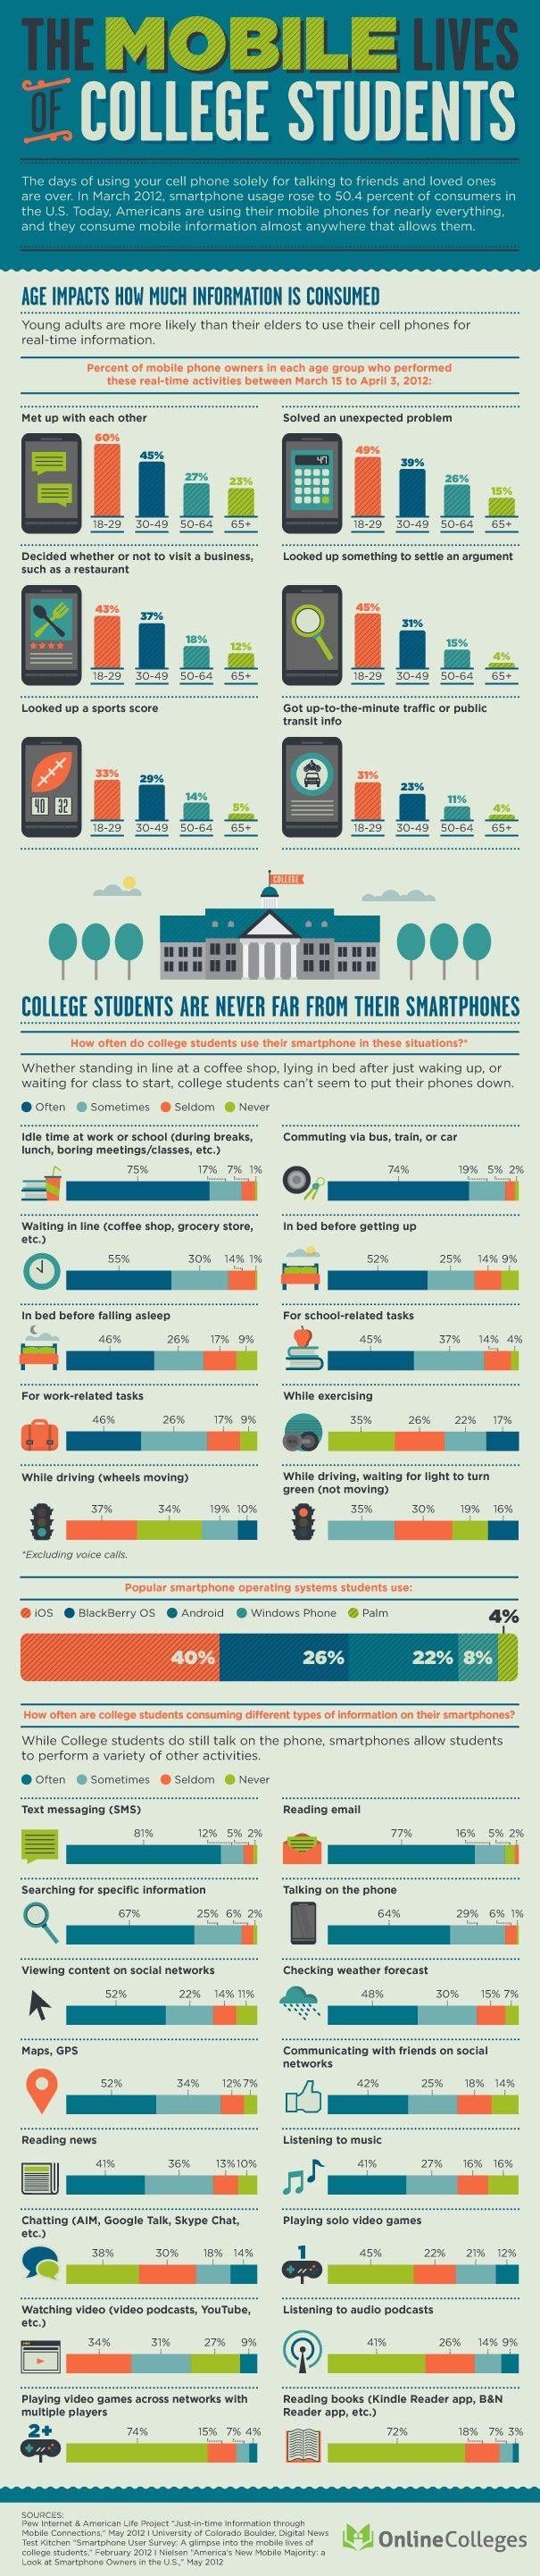 the #mobile lives of #college #students